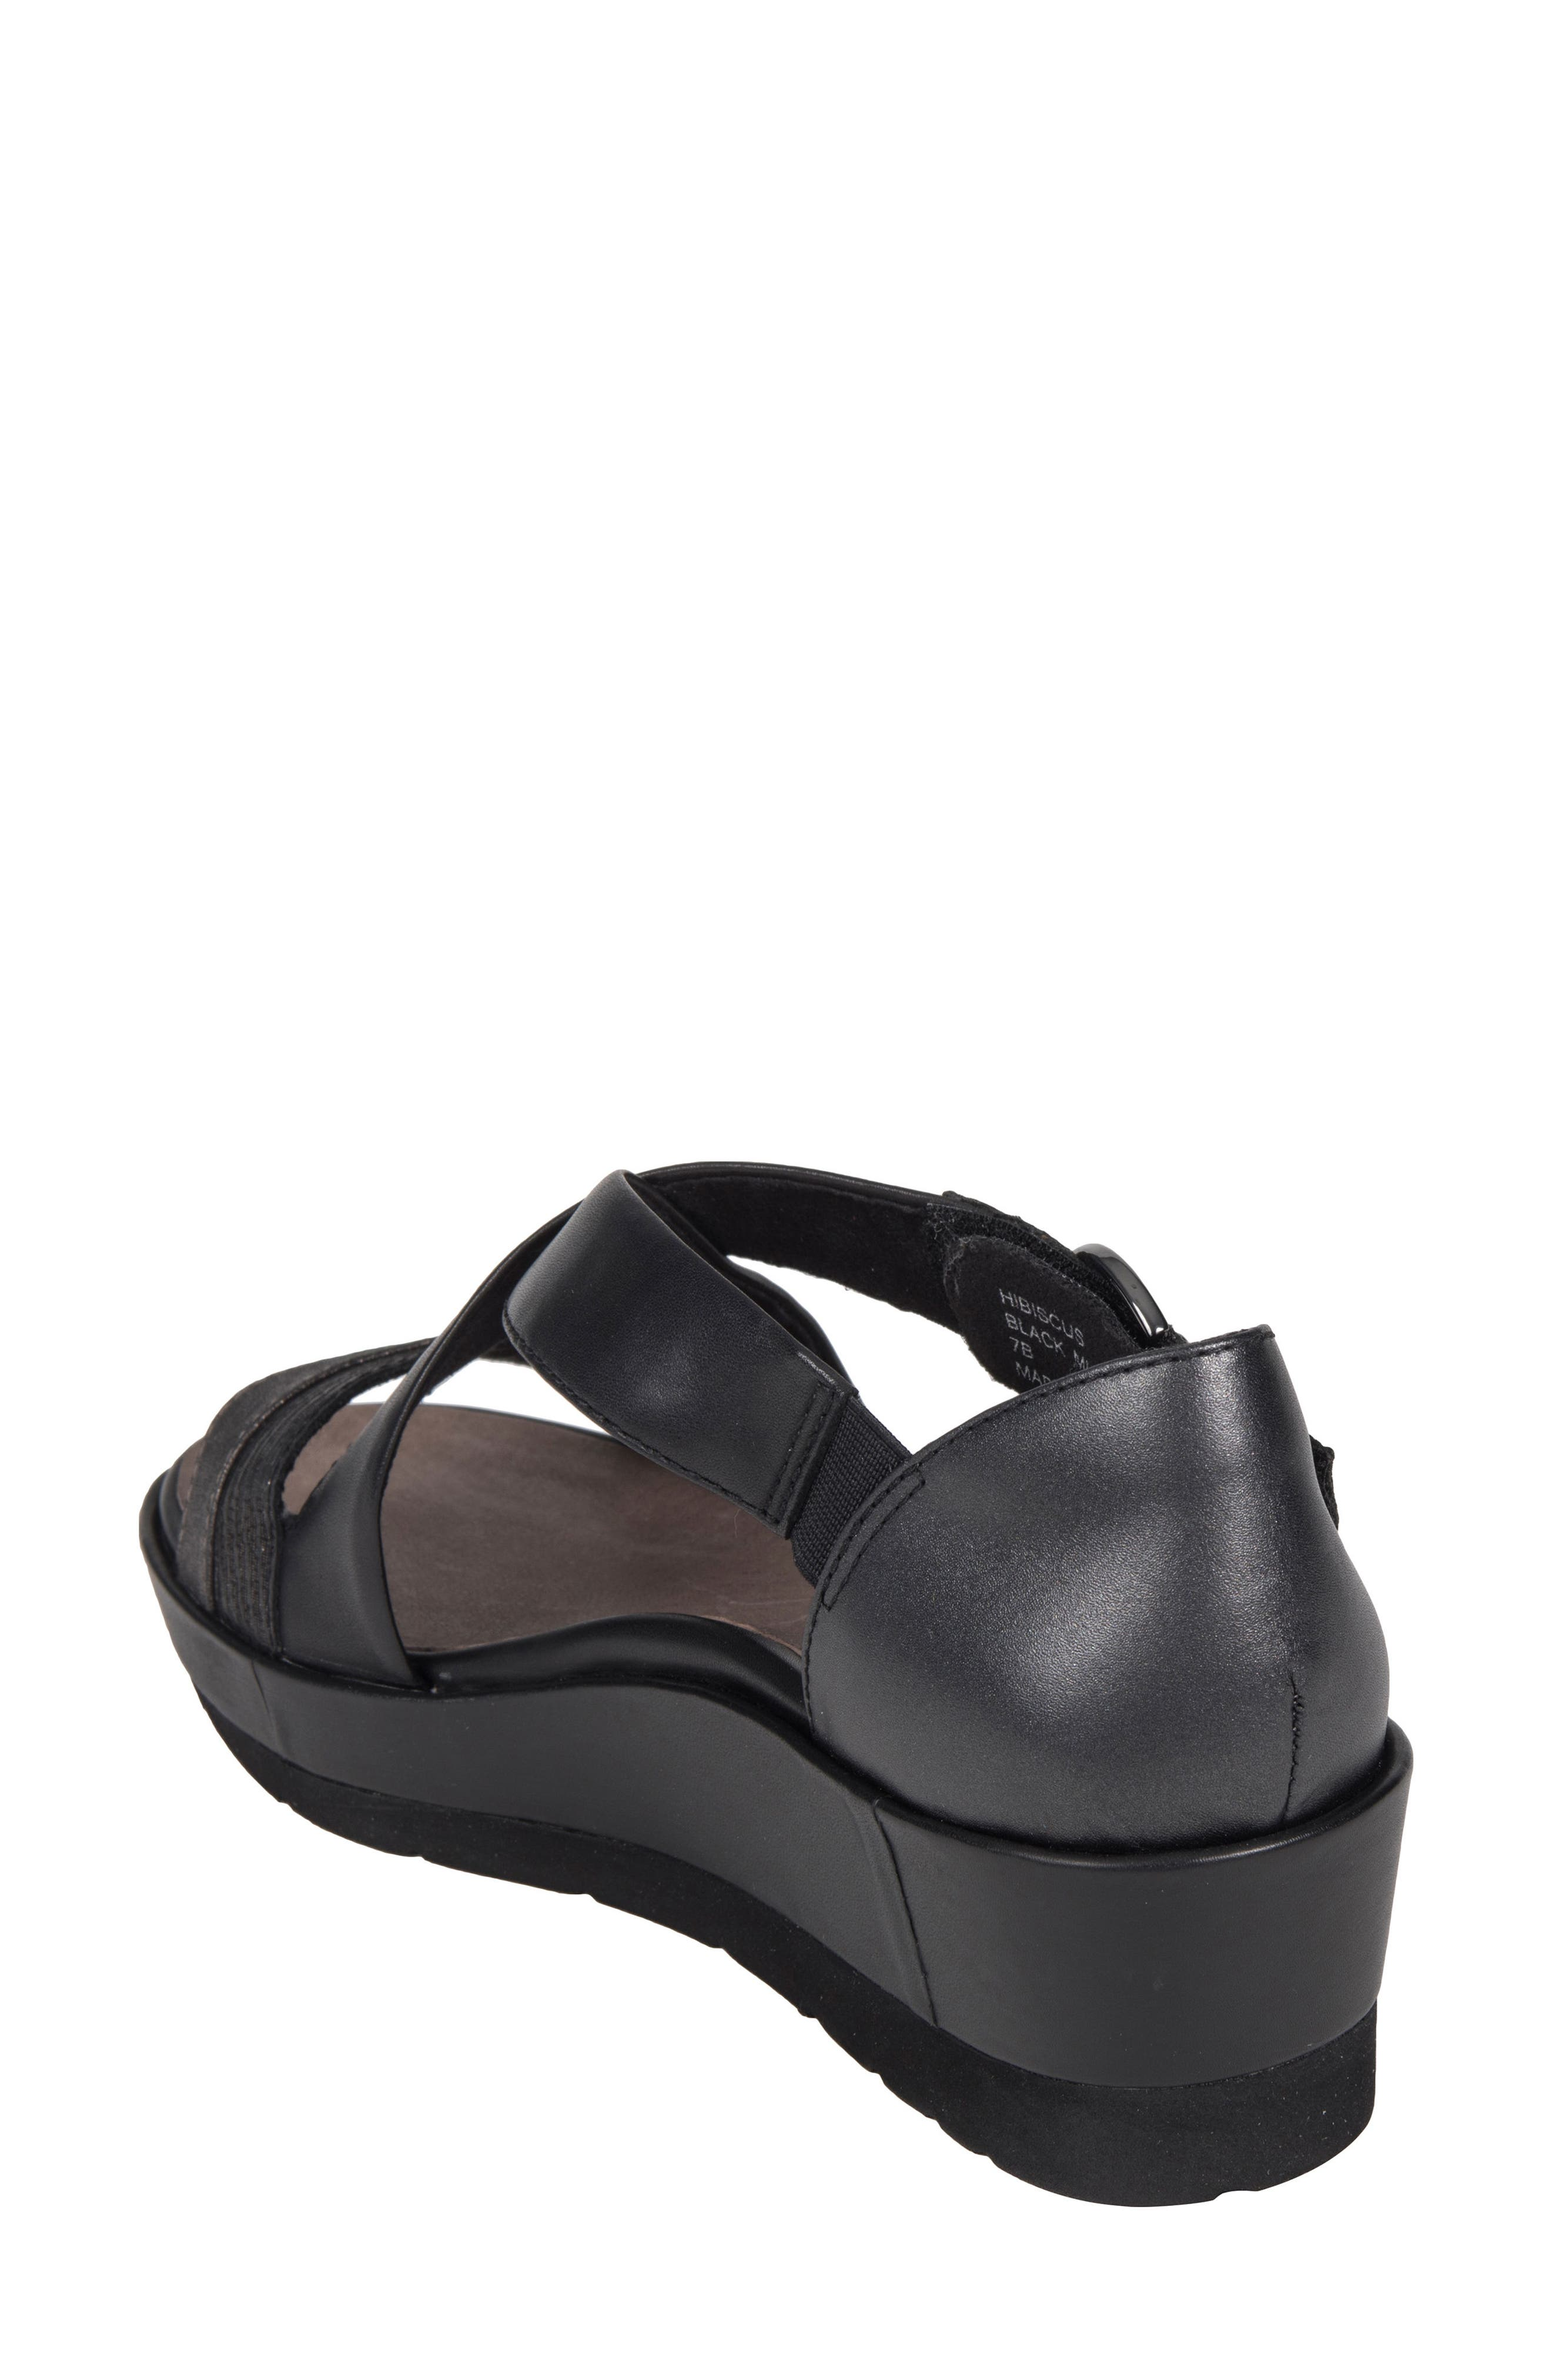 Hibiscus Sandal,                             Alternate thumbnail 2, color,                             BLACK LEATHER